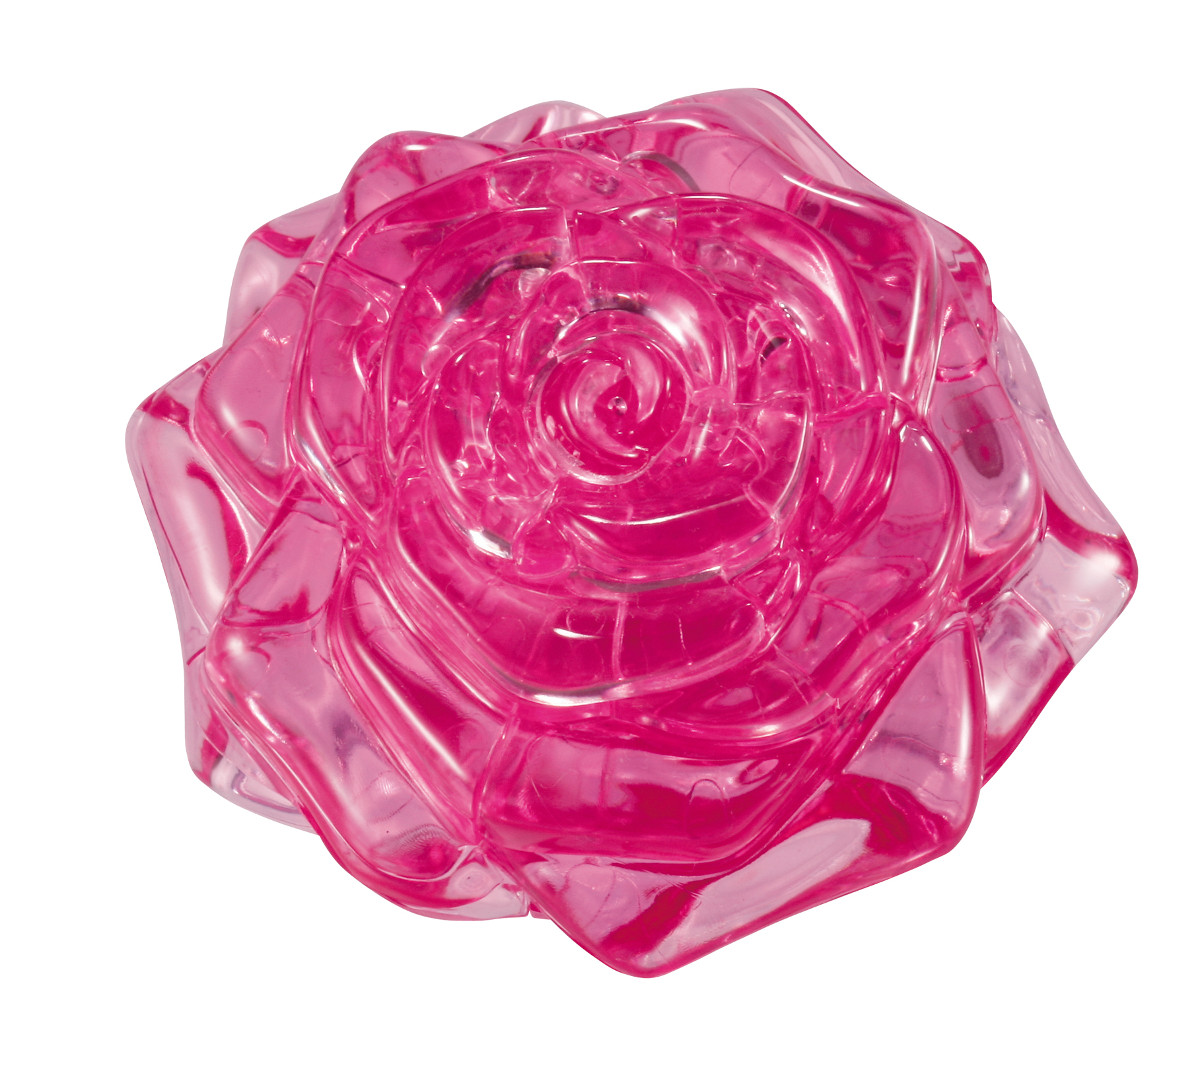 Rose (Pink) Flowers Jigsaw Puzzle